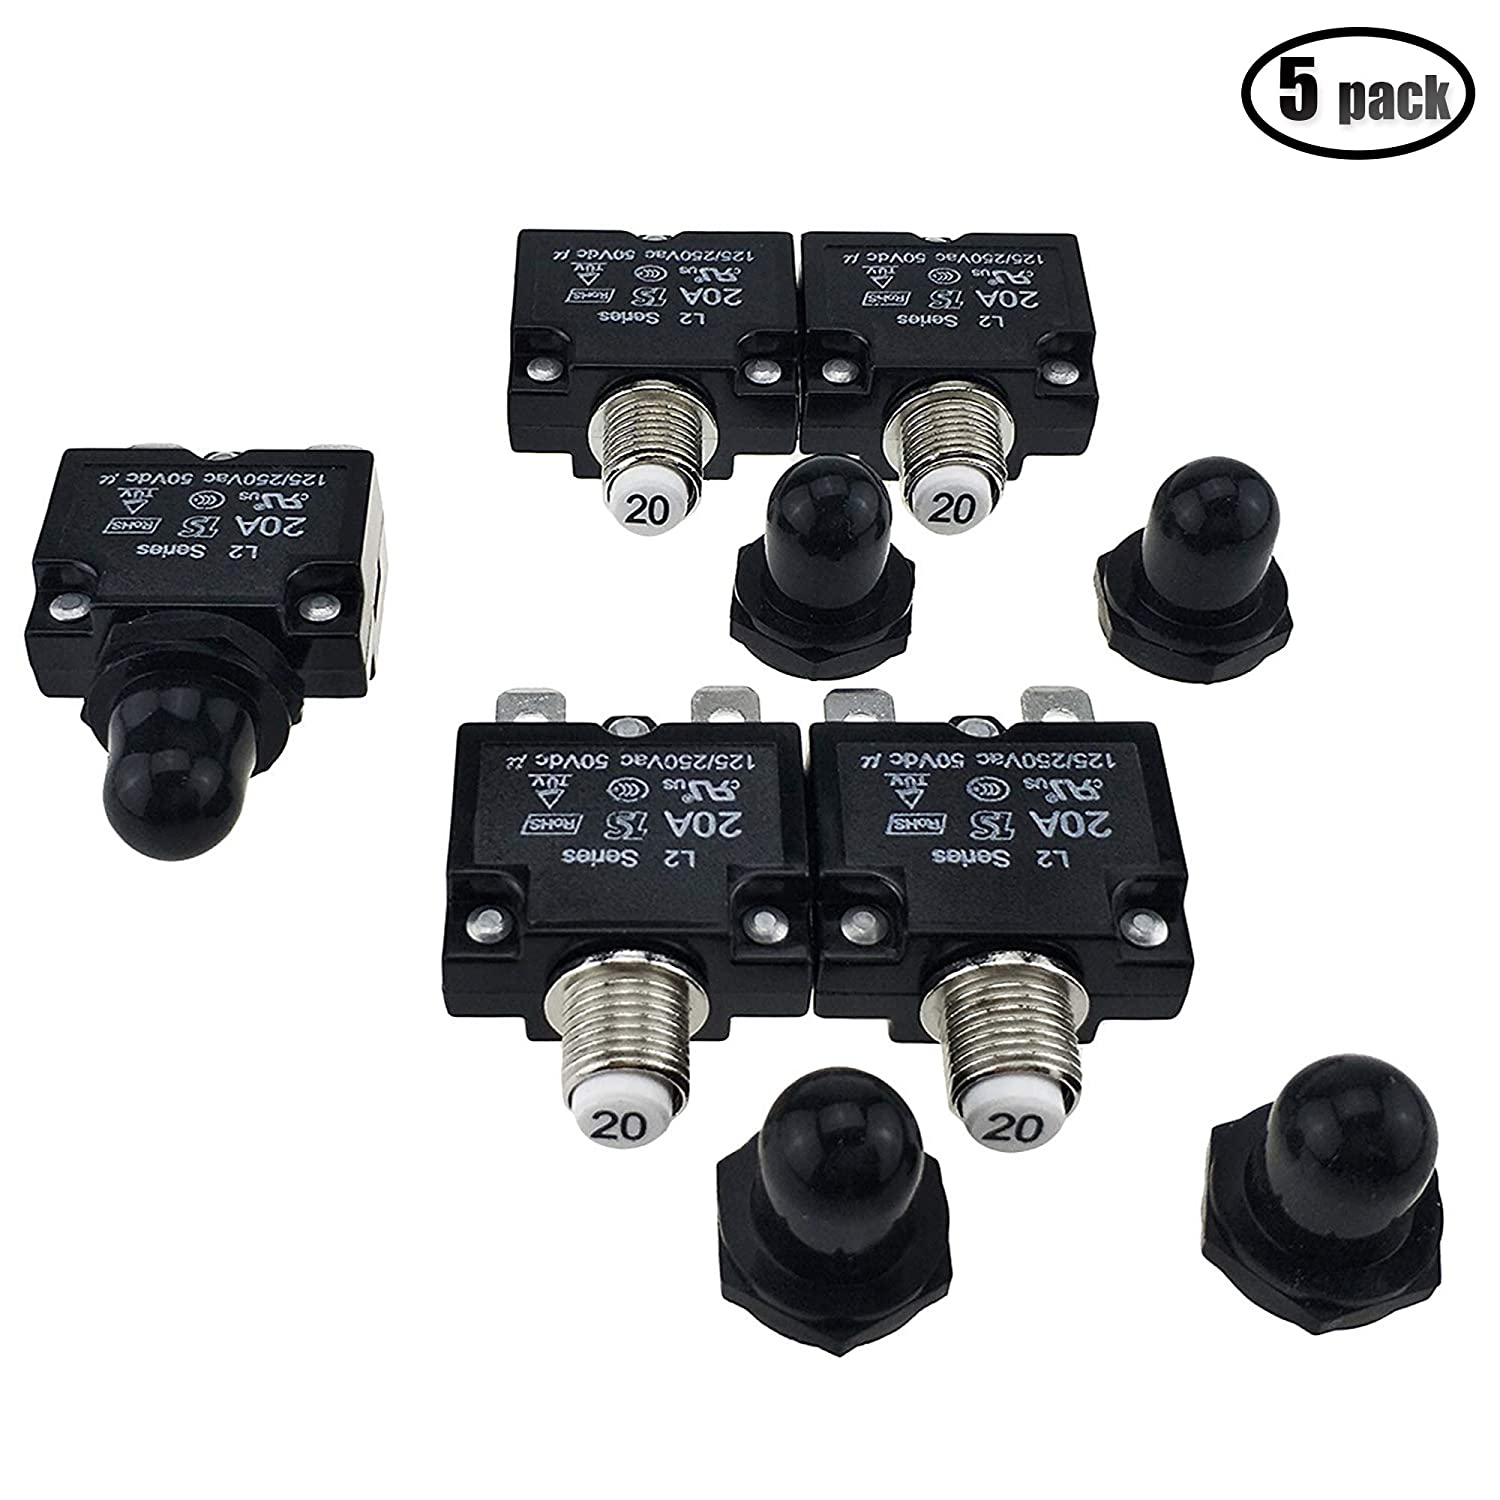 IZTOR 5PCS Push Button Reset 20A Circuit Breakers with Quick Connect Terminals and Waterproof Button Black Cap